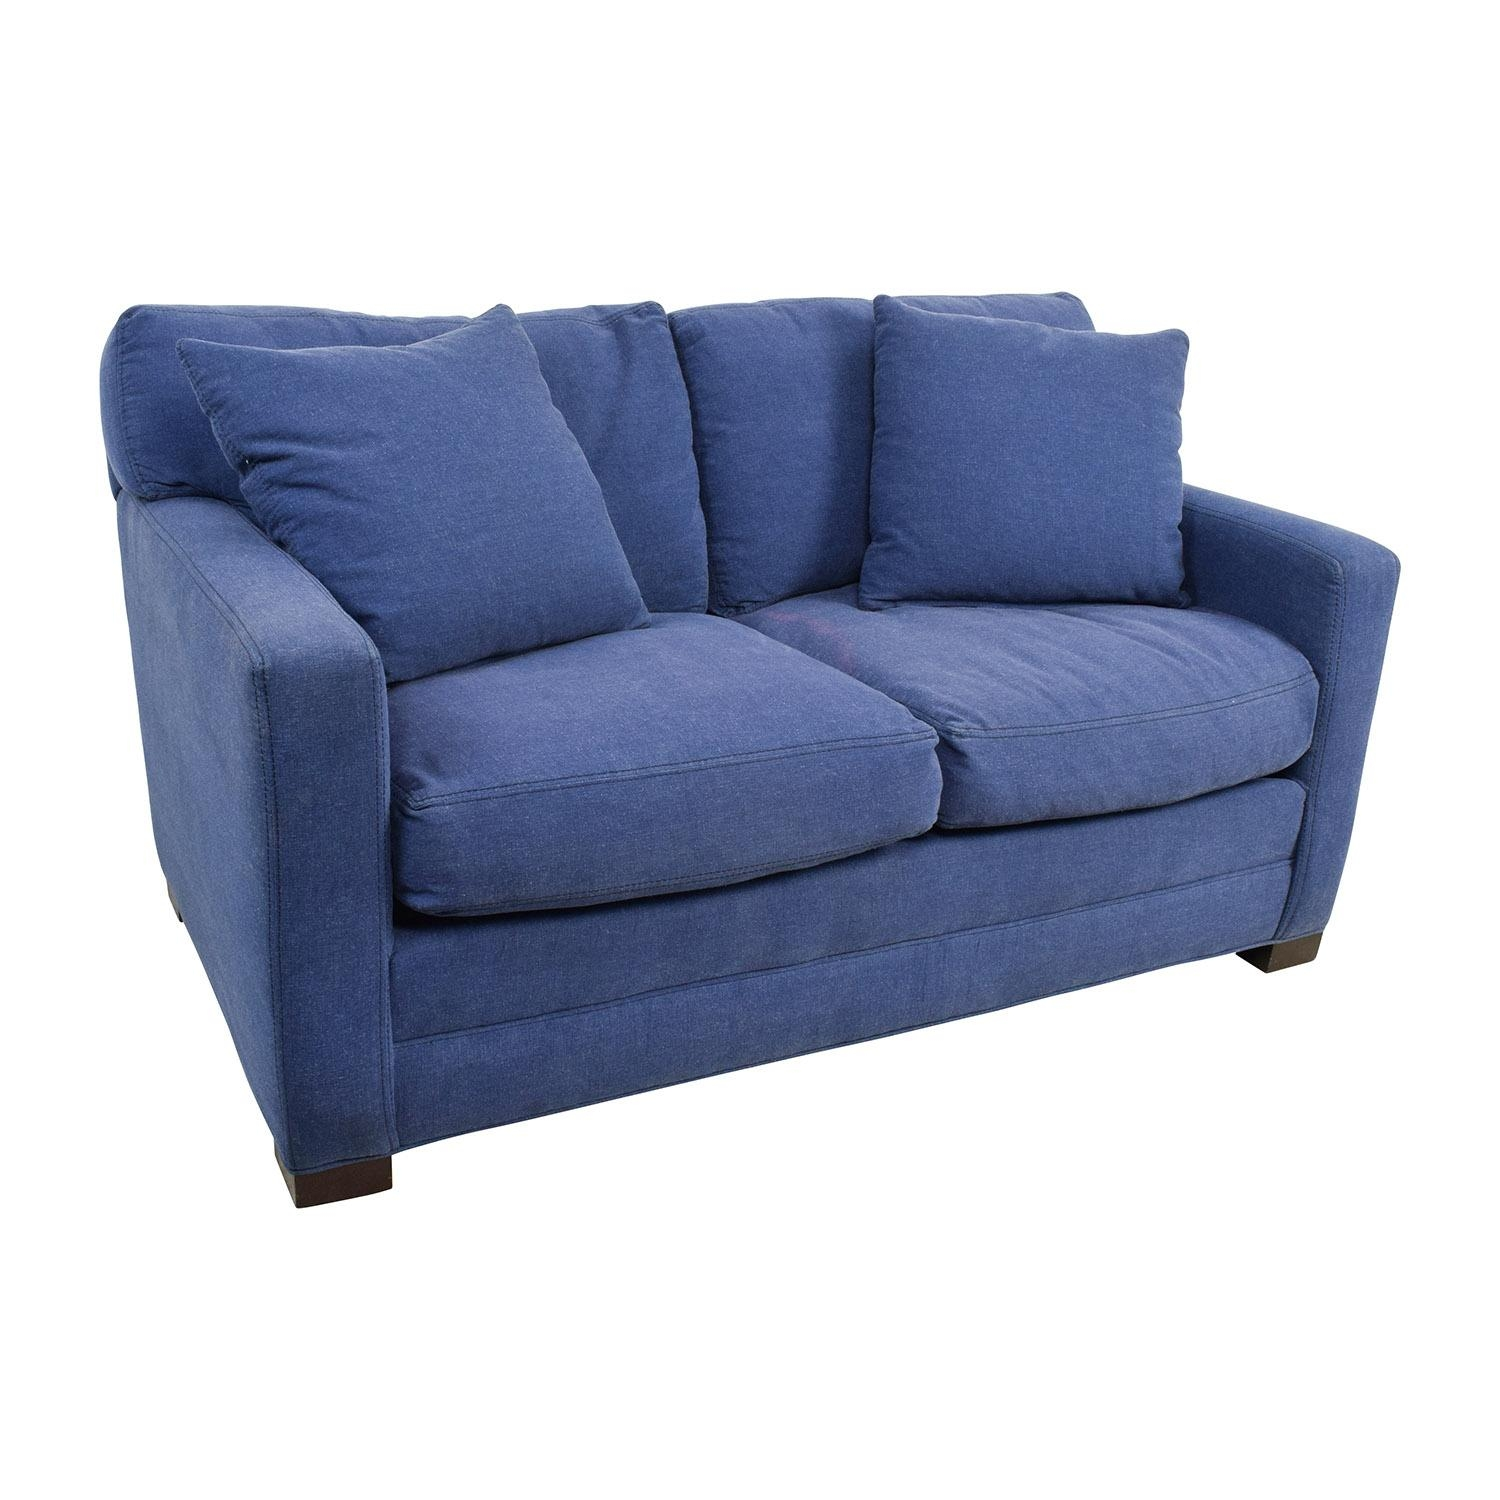 79% Off – Lee Industries Lee Industries Denim Blue Loveseat / Sofas Throughout Denim Loveseats (View 4 of 20)